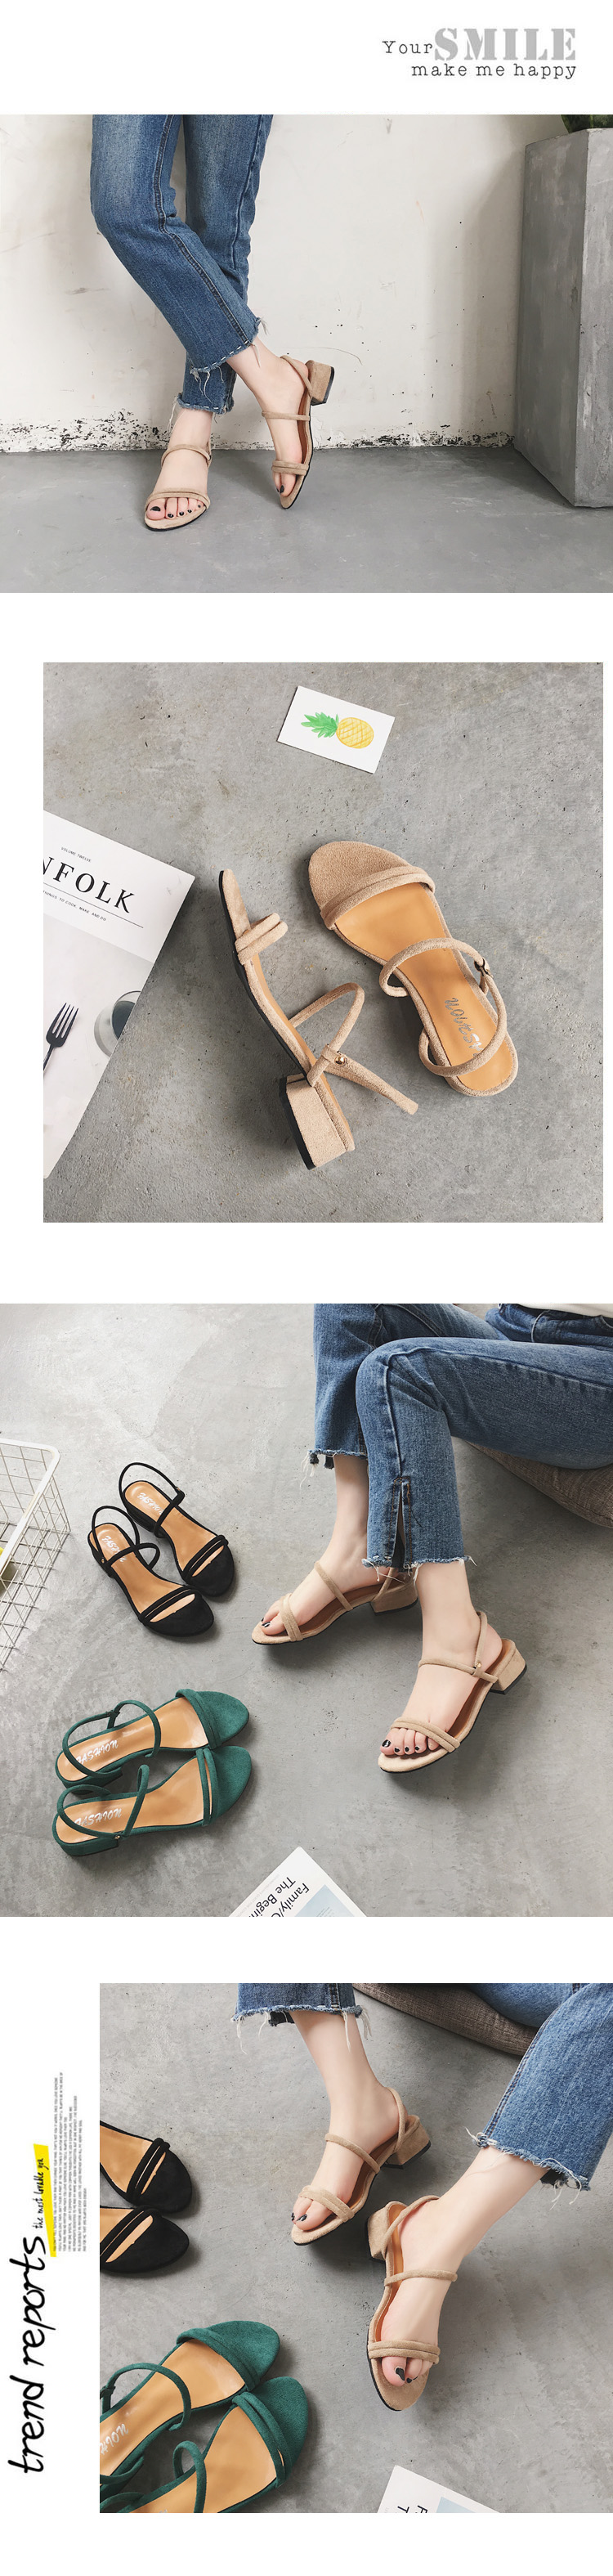 HTB1KhCYlBmWBuNkSndVq6AsApXaE new Flat outdoor slippers Sandals foot ring straps beaded Roman sandals fashion low slope with women's shoes low heel shoes x69